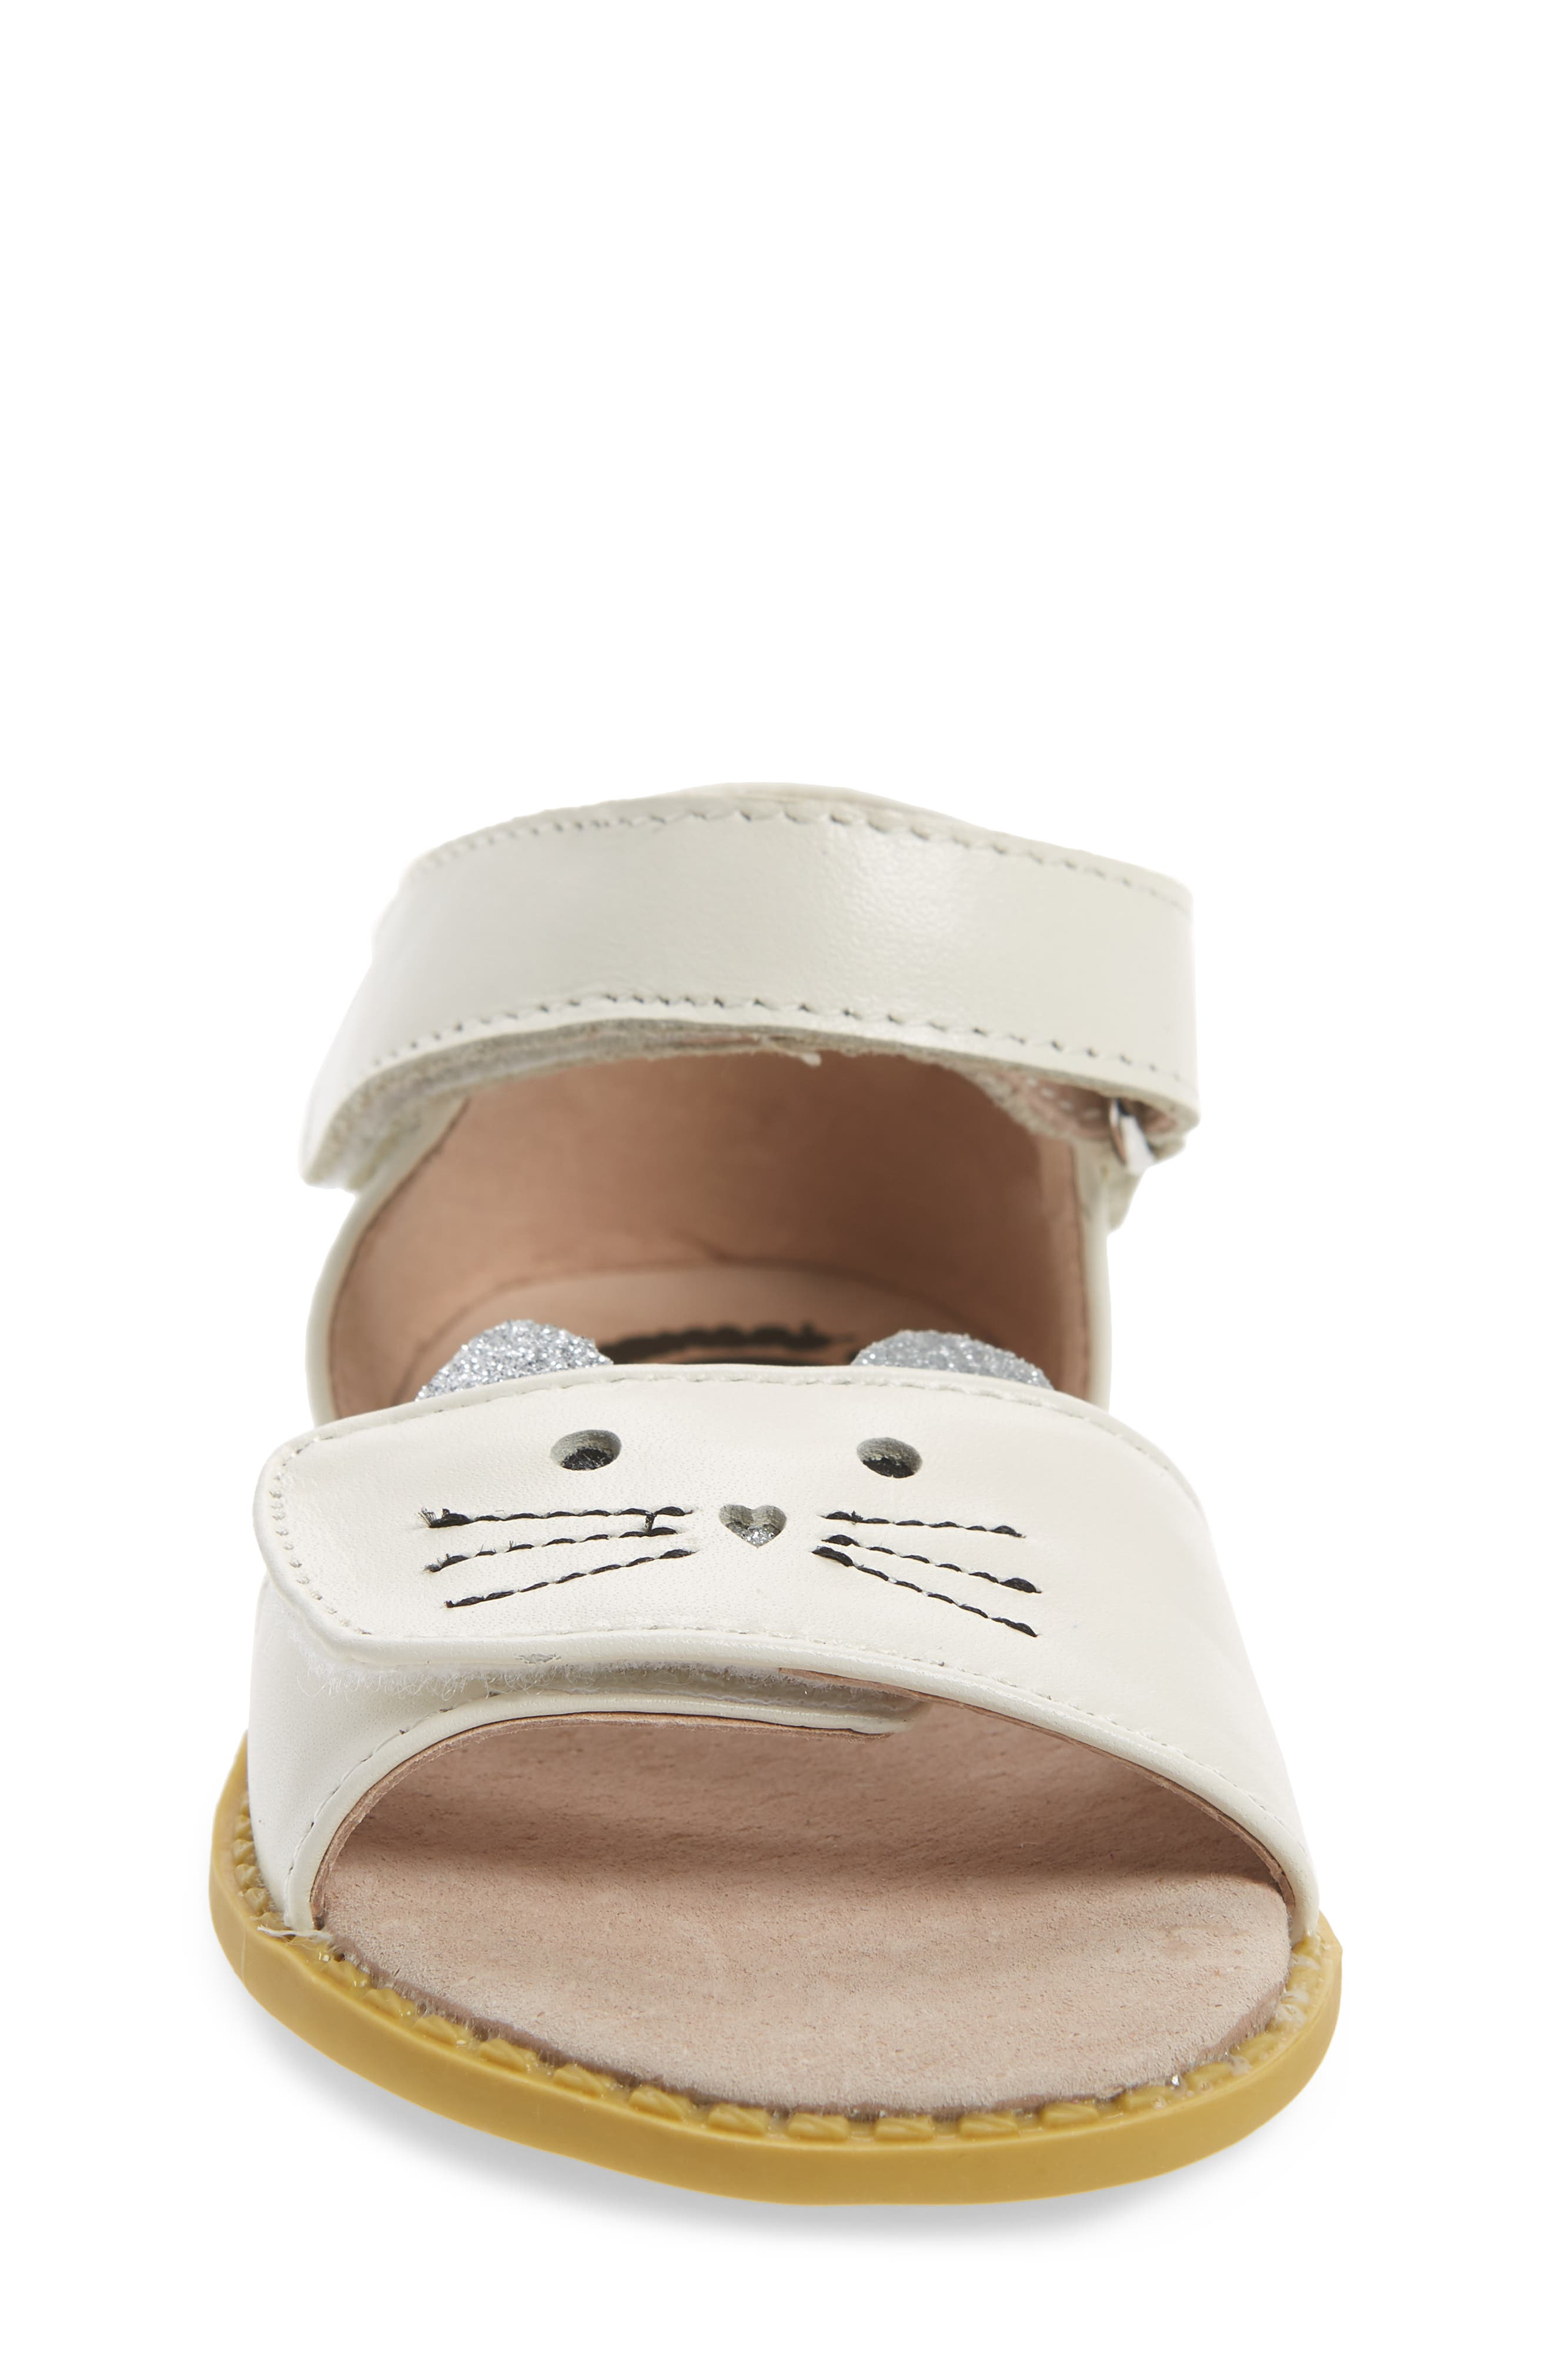 Tabby Kitty Face Sandal,                             Alternate thumbnail 4, color,                             MILK